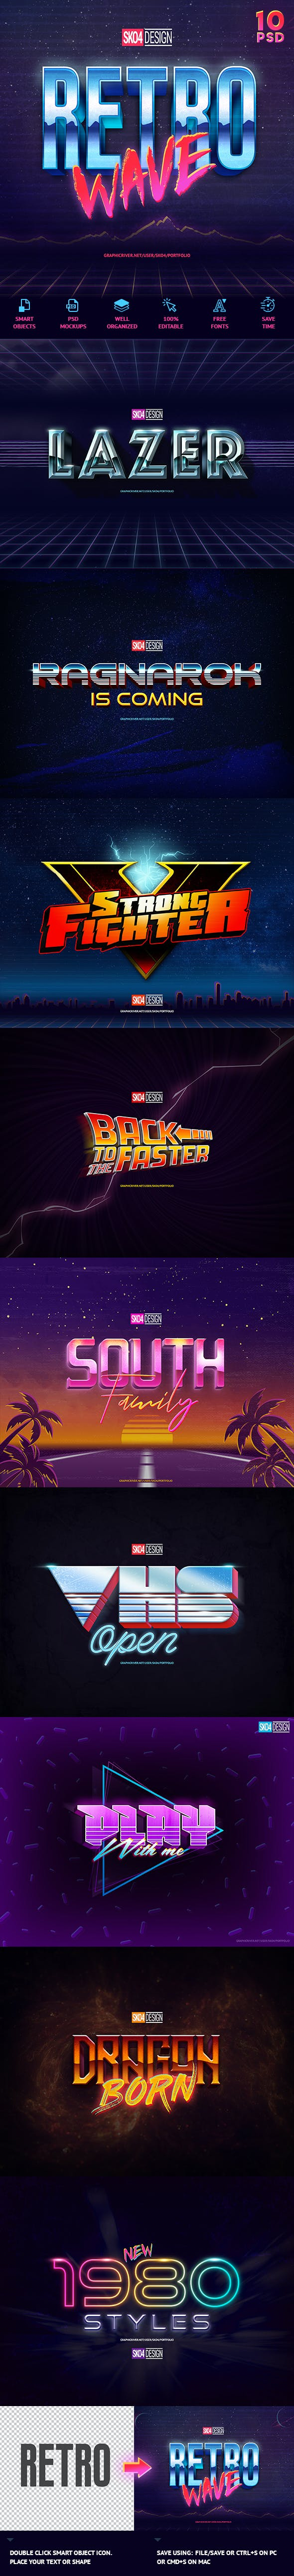 80s Retro Text Effects - Text Effects Actions